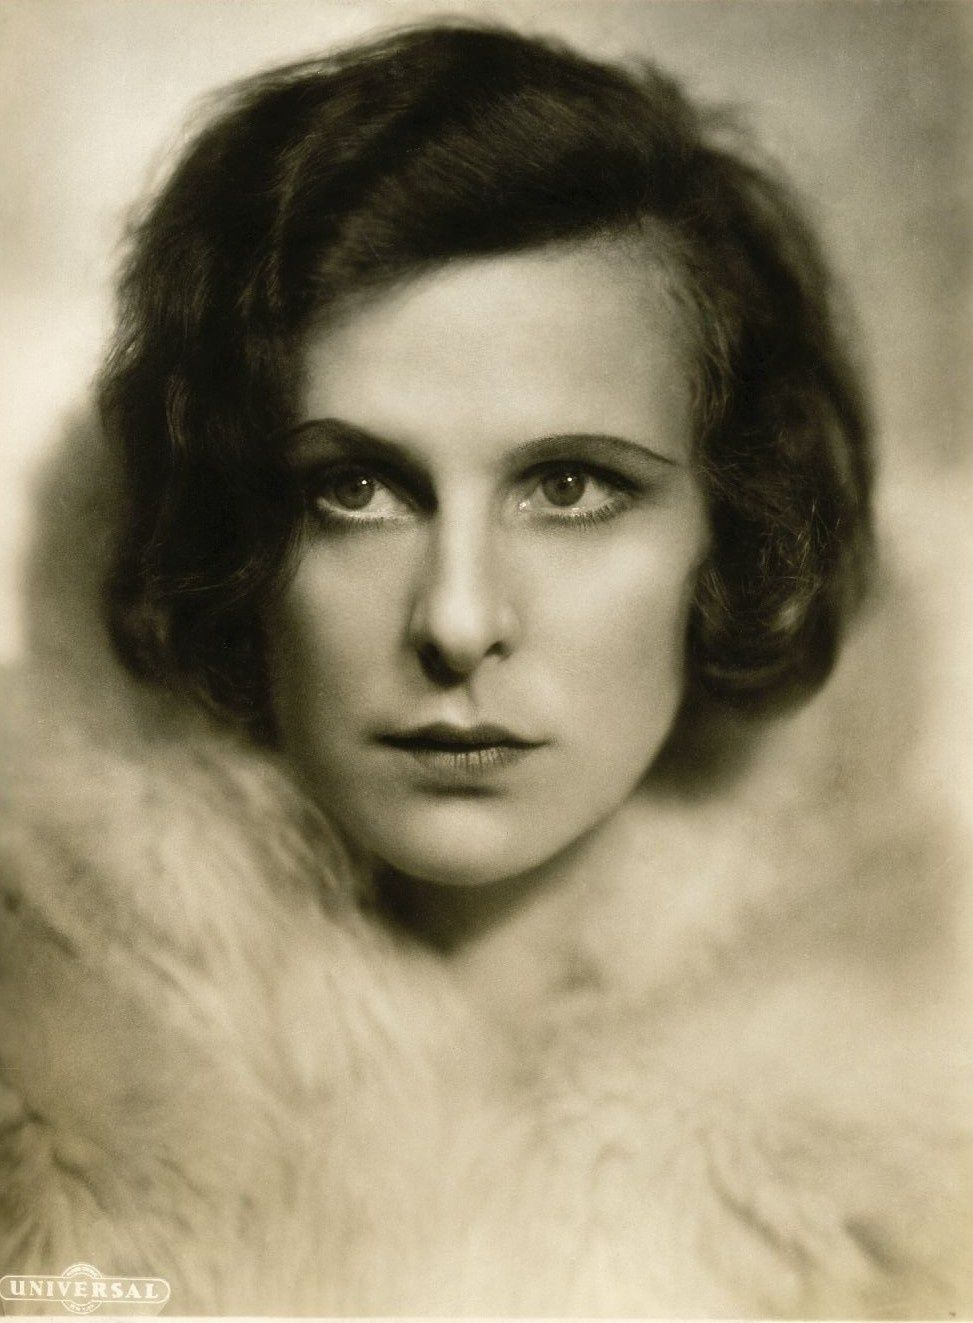 leni riefenstahl im sudanleni riefenstahl africa, leni riefenstahl olympia, leni riefenstahl olympia 1936, leni riefenstahl biographie, leni riefenstahl documentary, leni riefenstahl im sudan, leni riefenstahl - the immoderation of me, leni riefenstahl bücher, leni riefenstahl works, leni riefenstahl wiki, leni riefenstahl autogramm, leni riefenstahl 100, leni riefenstahl george lucas, leni riefenstahl 2003, leni riefenstahl interview, leni riefenstahl nuba, leni riefenstahl mann, leni riefenstahl alt, leni riefenstahl africa pdf, leni riefenstahl triumph of the will